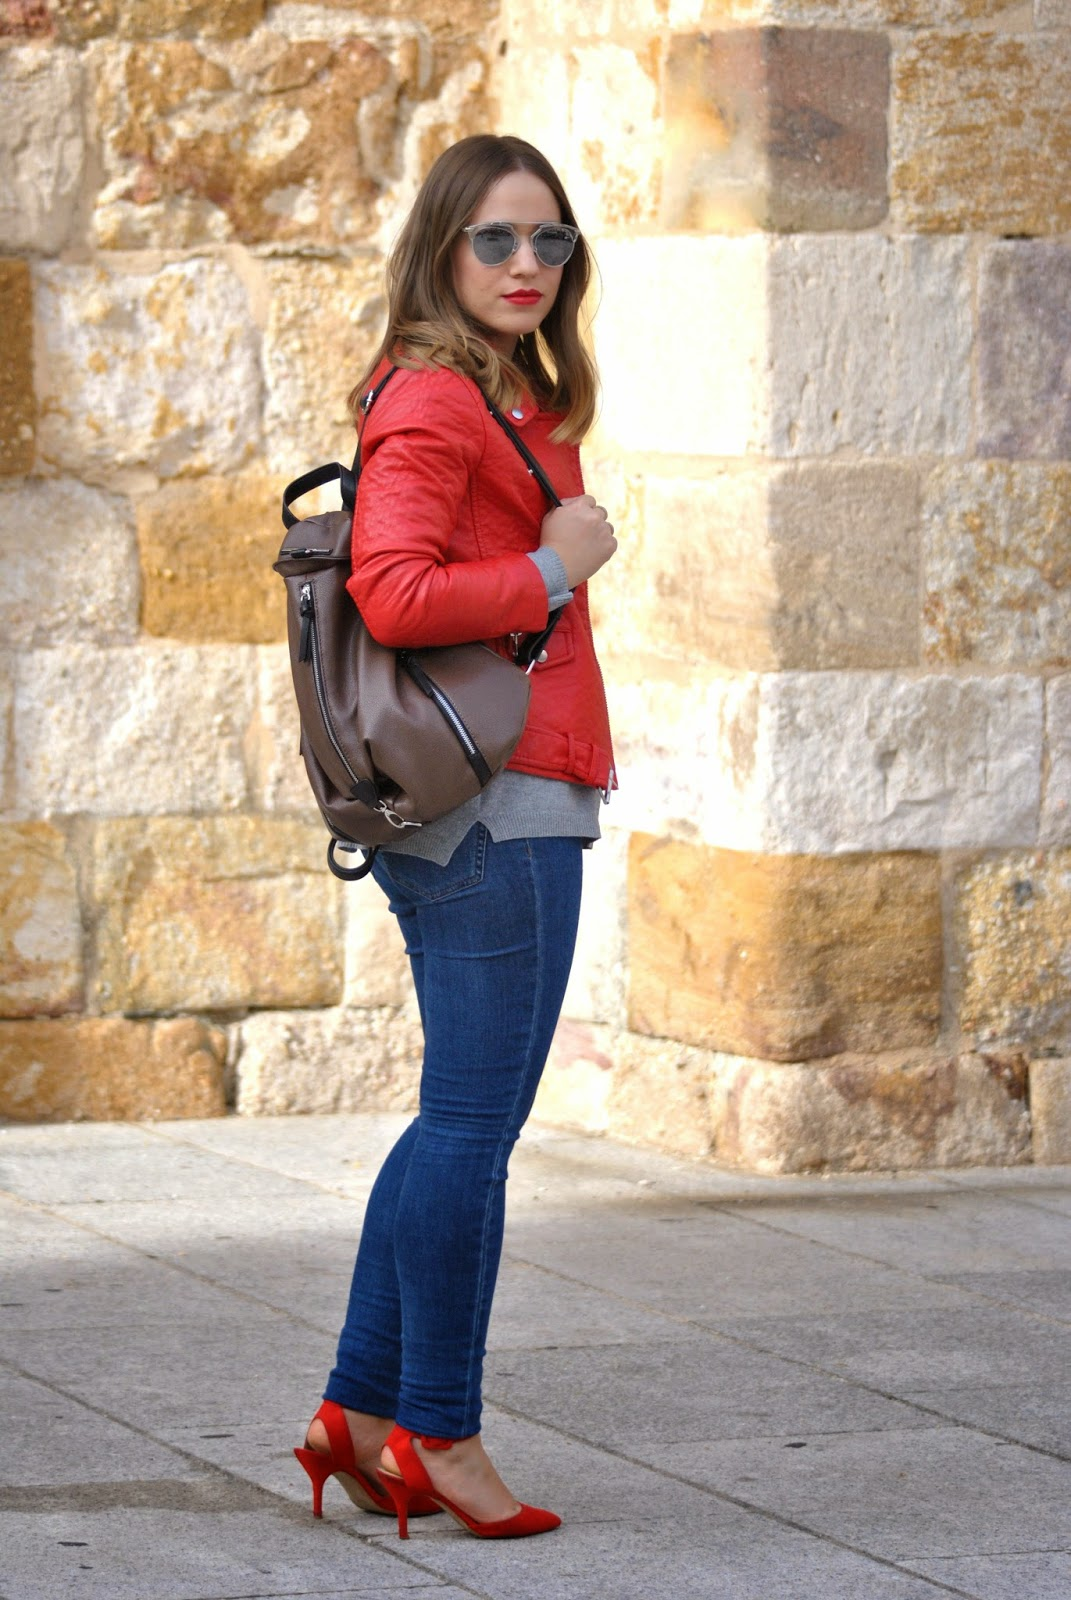 Red Jacket/ Red Lips